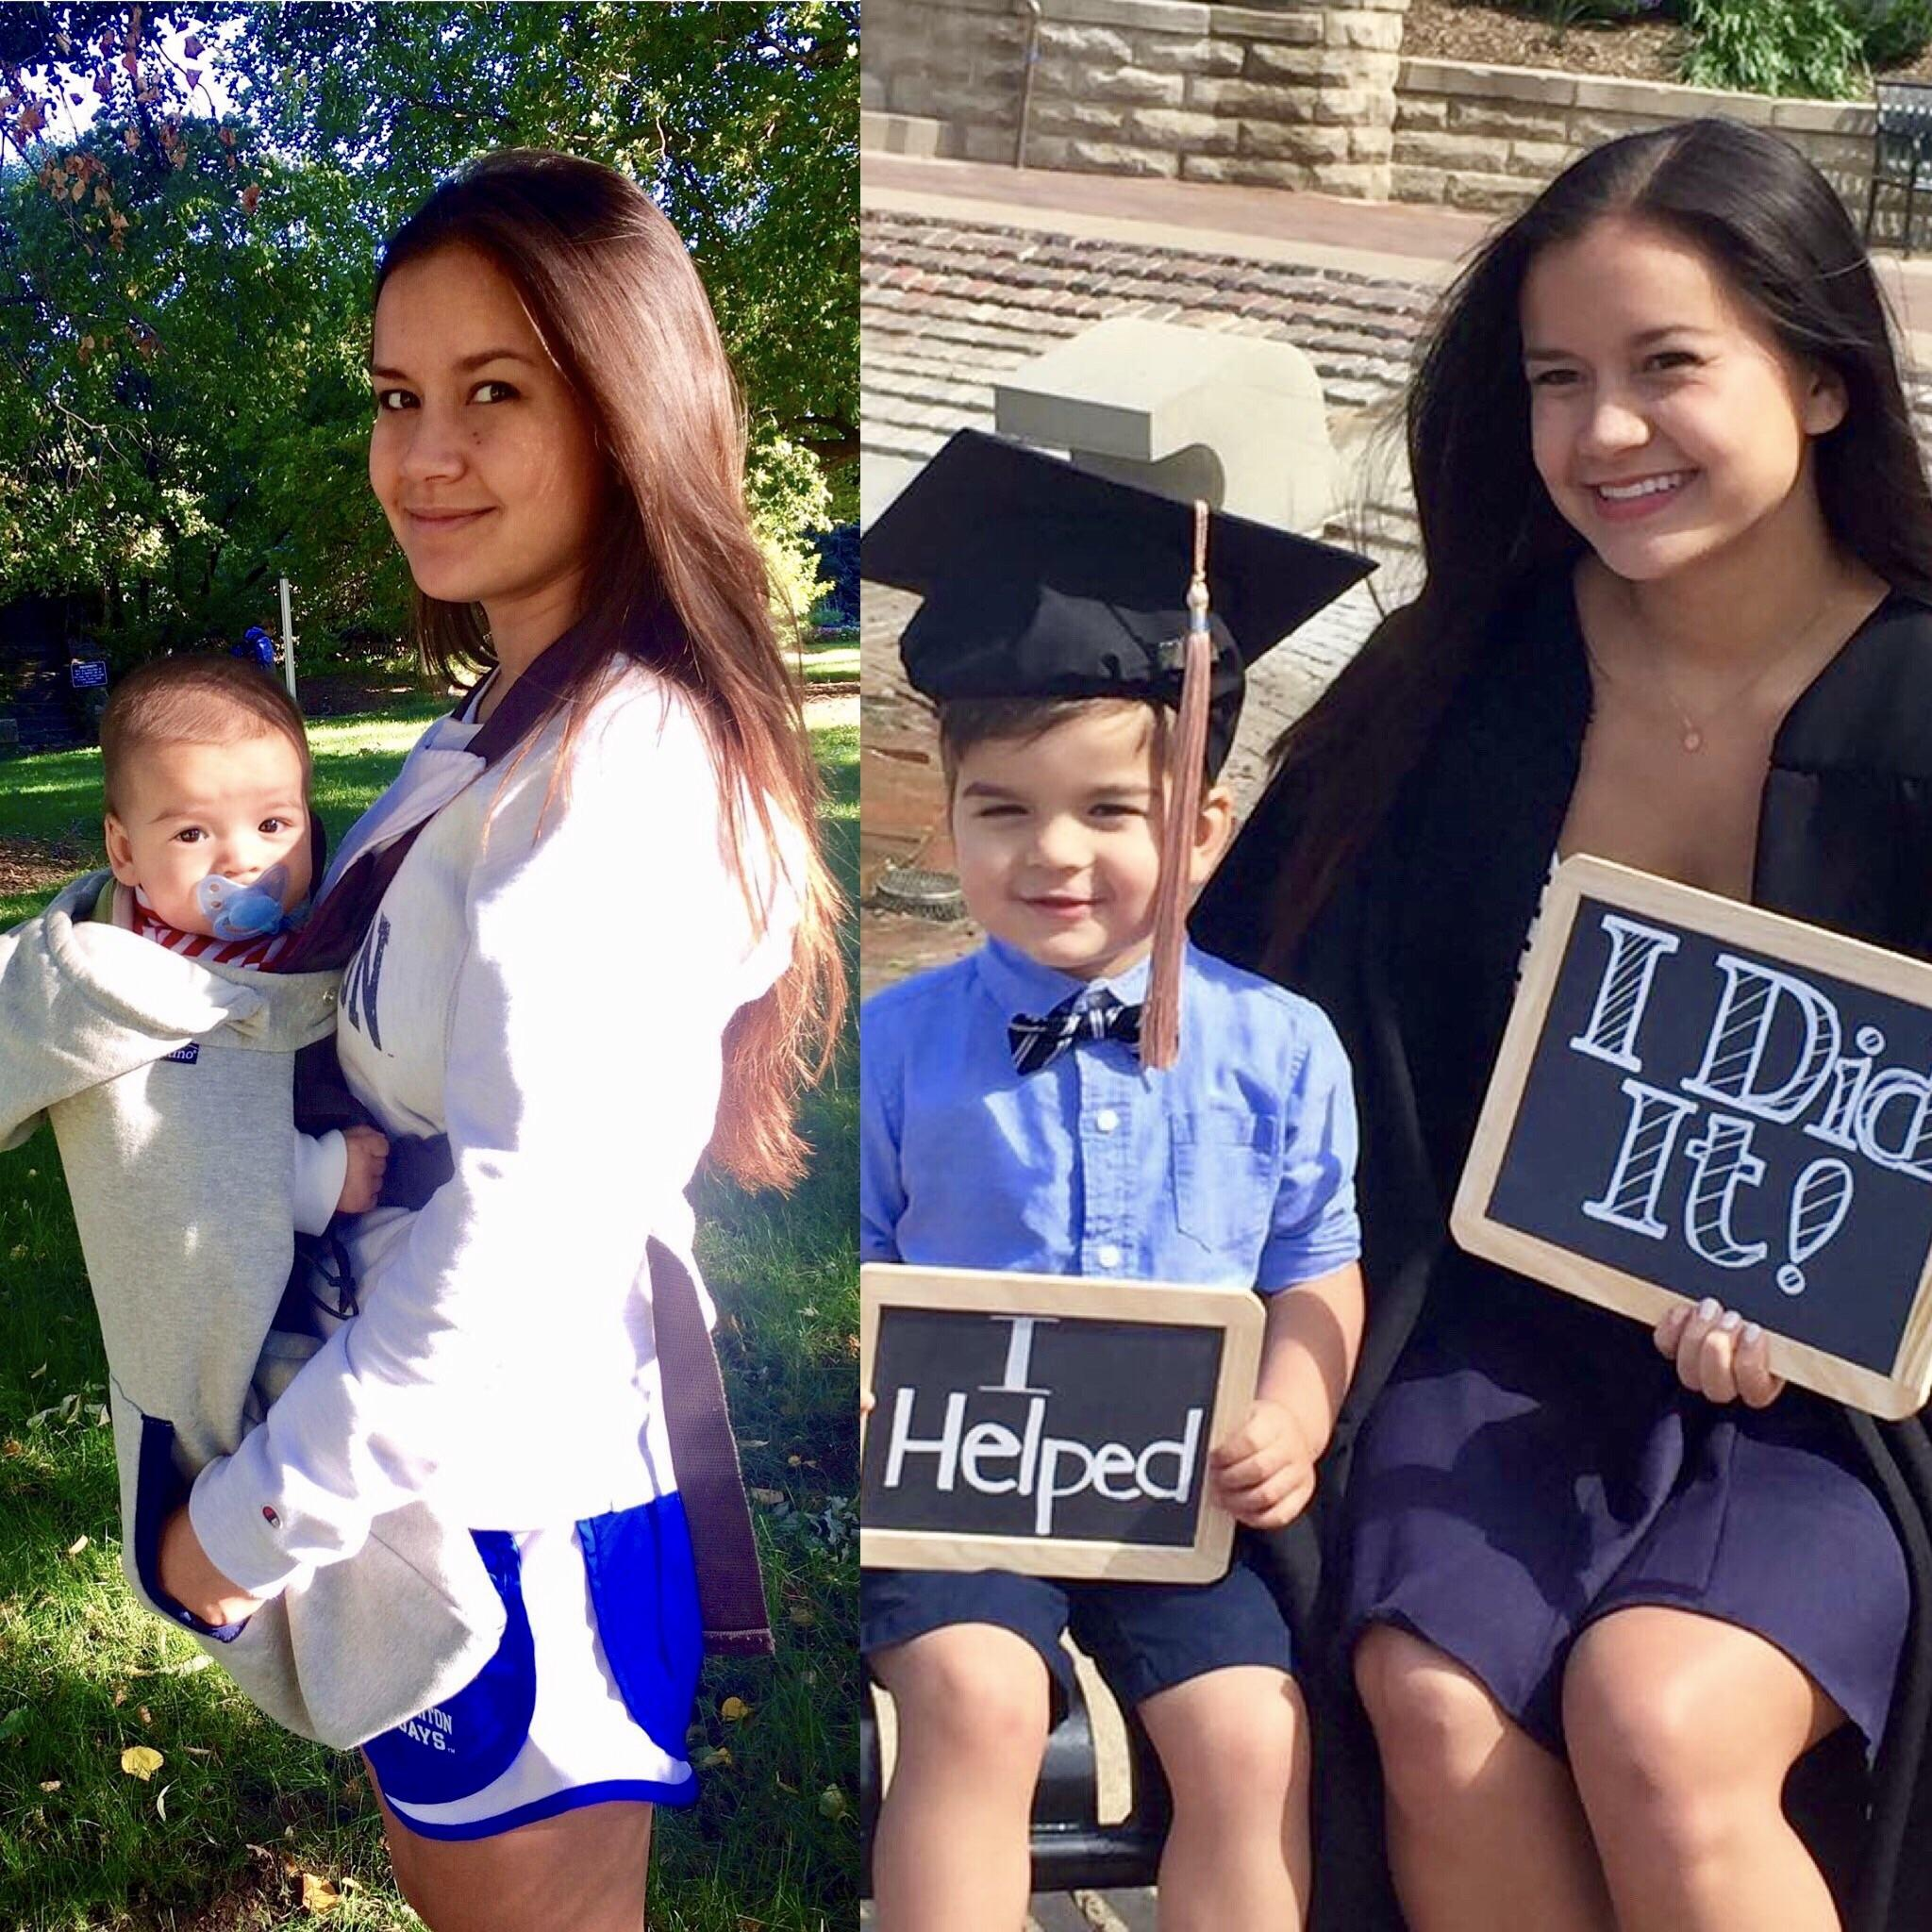 In 2012, sophomore year in college and in 2016, on graduation day [image]